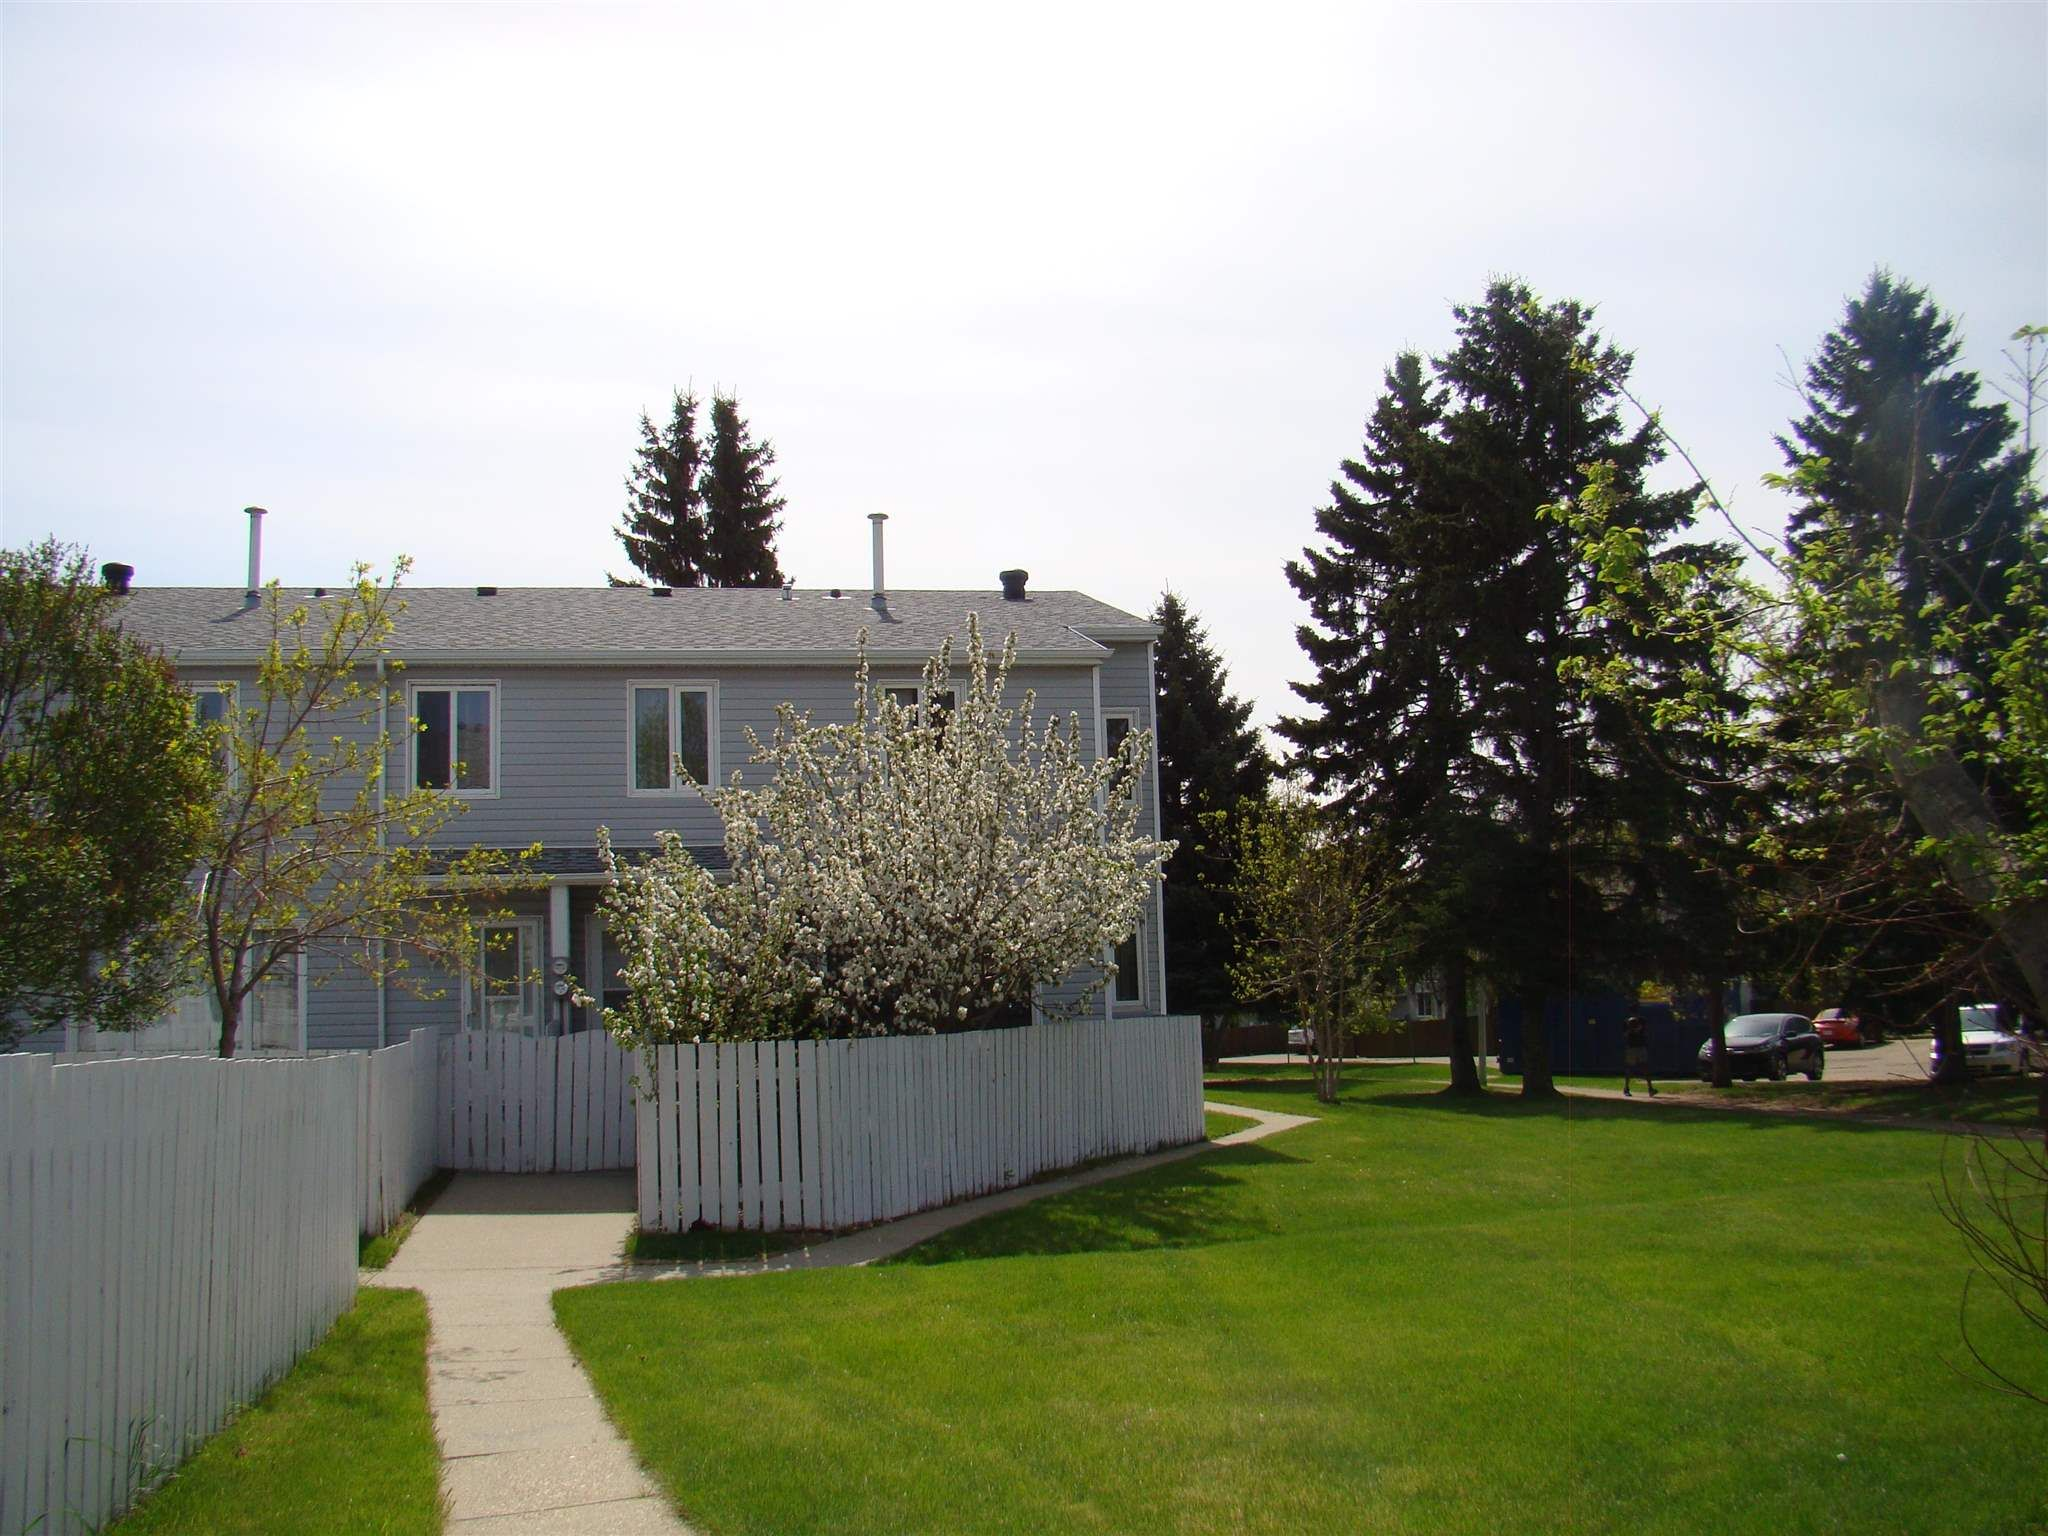 Main Photo: 33 AMBERLY Court in Edmonton: Zone 02 Townhouse for sale : MLS®# E4247995